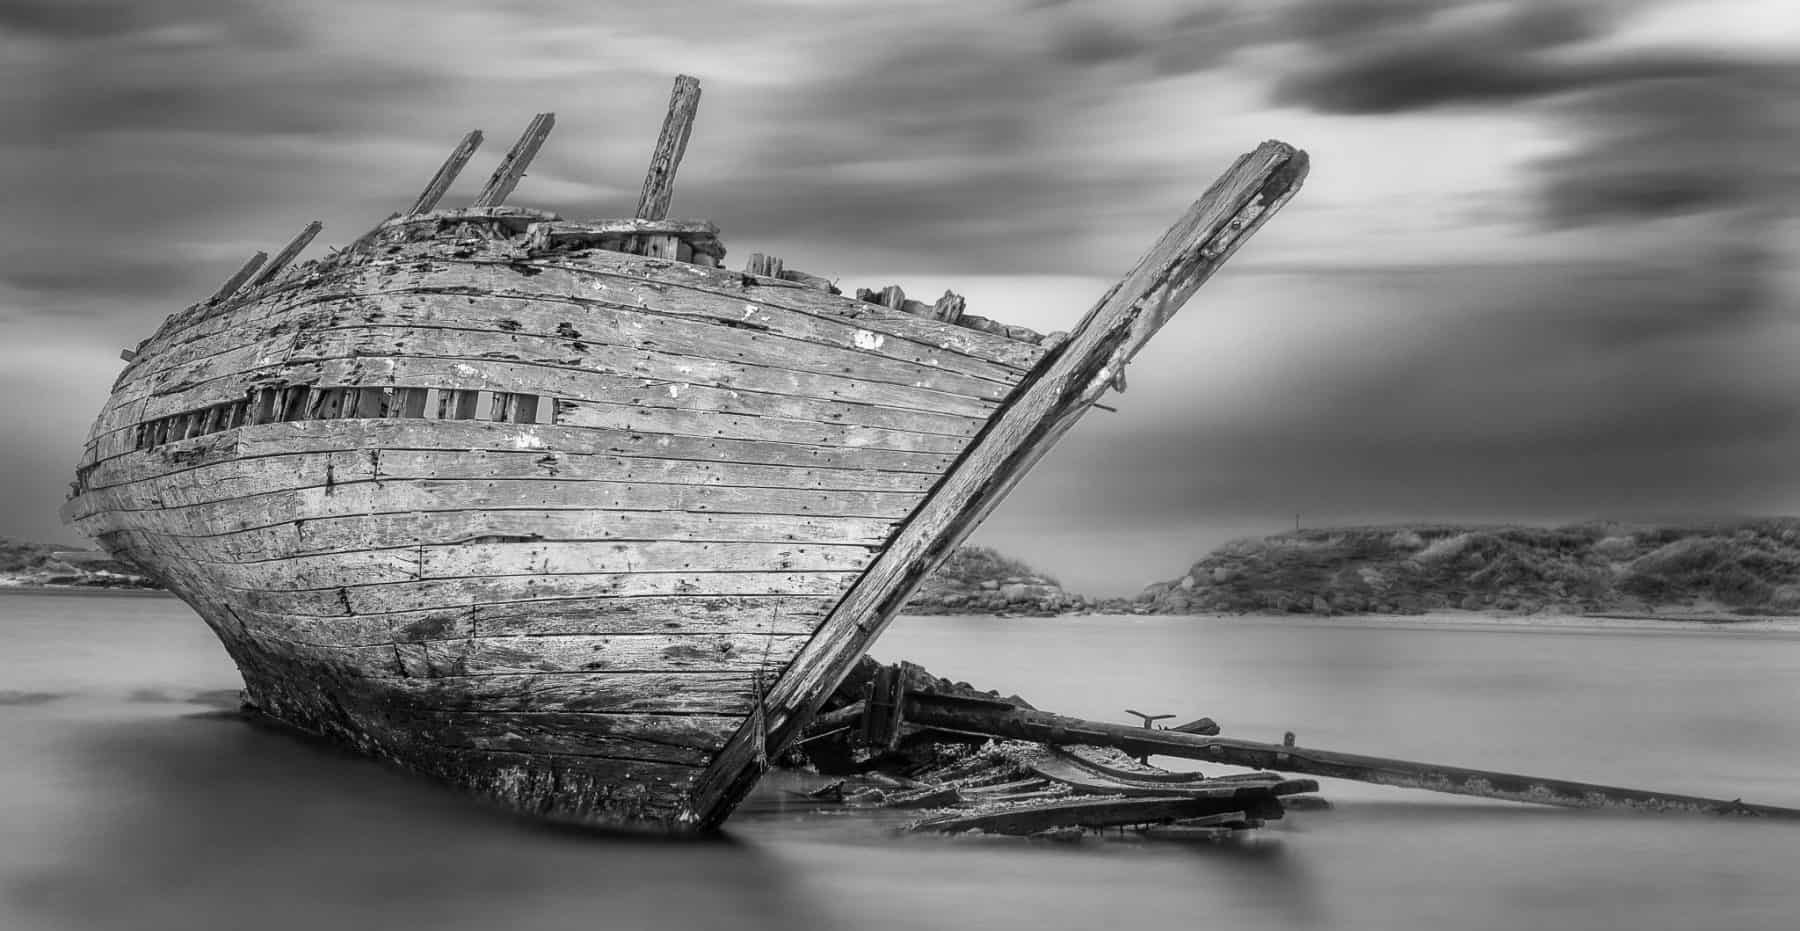 Shipwreck - black and white photography